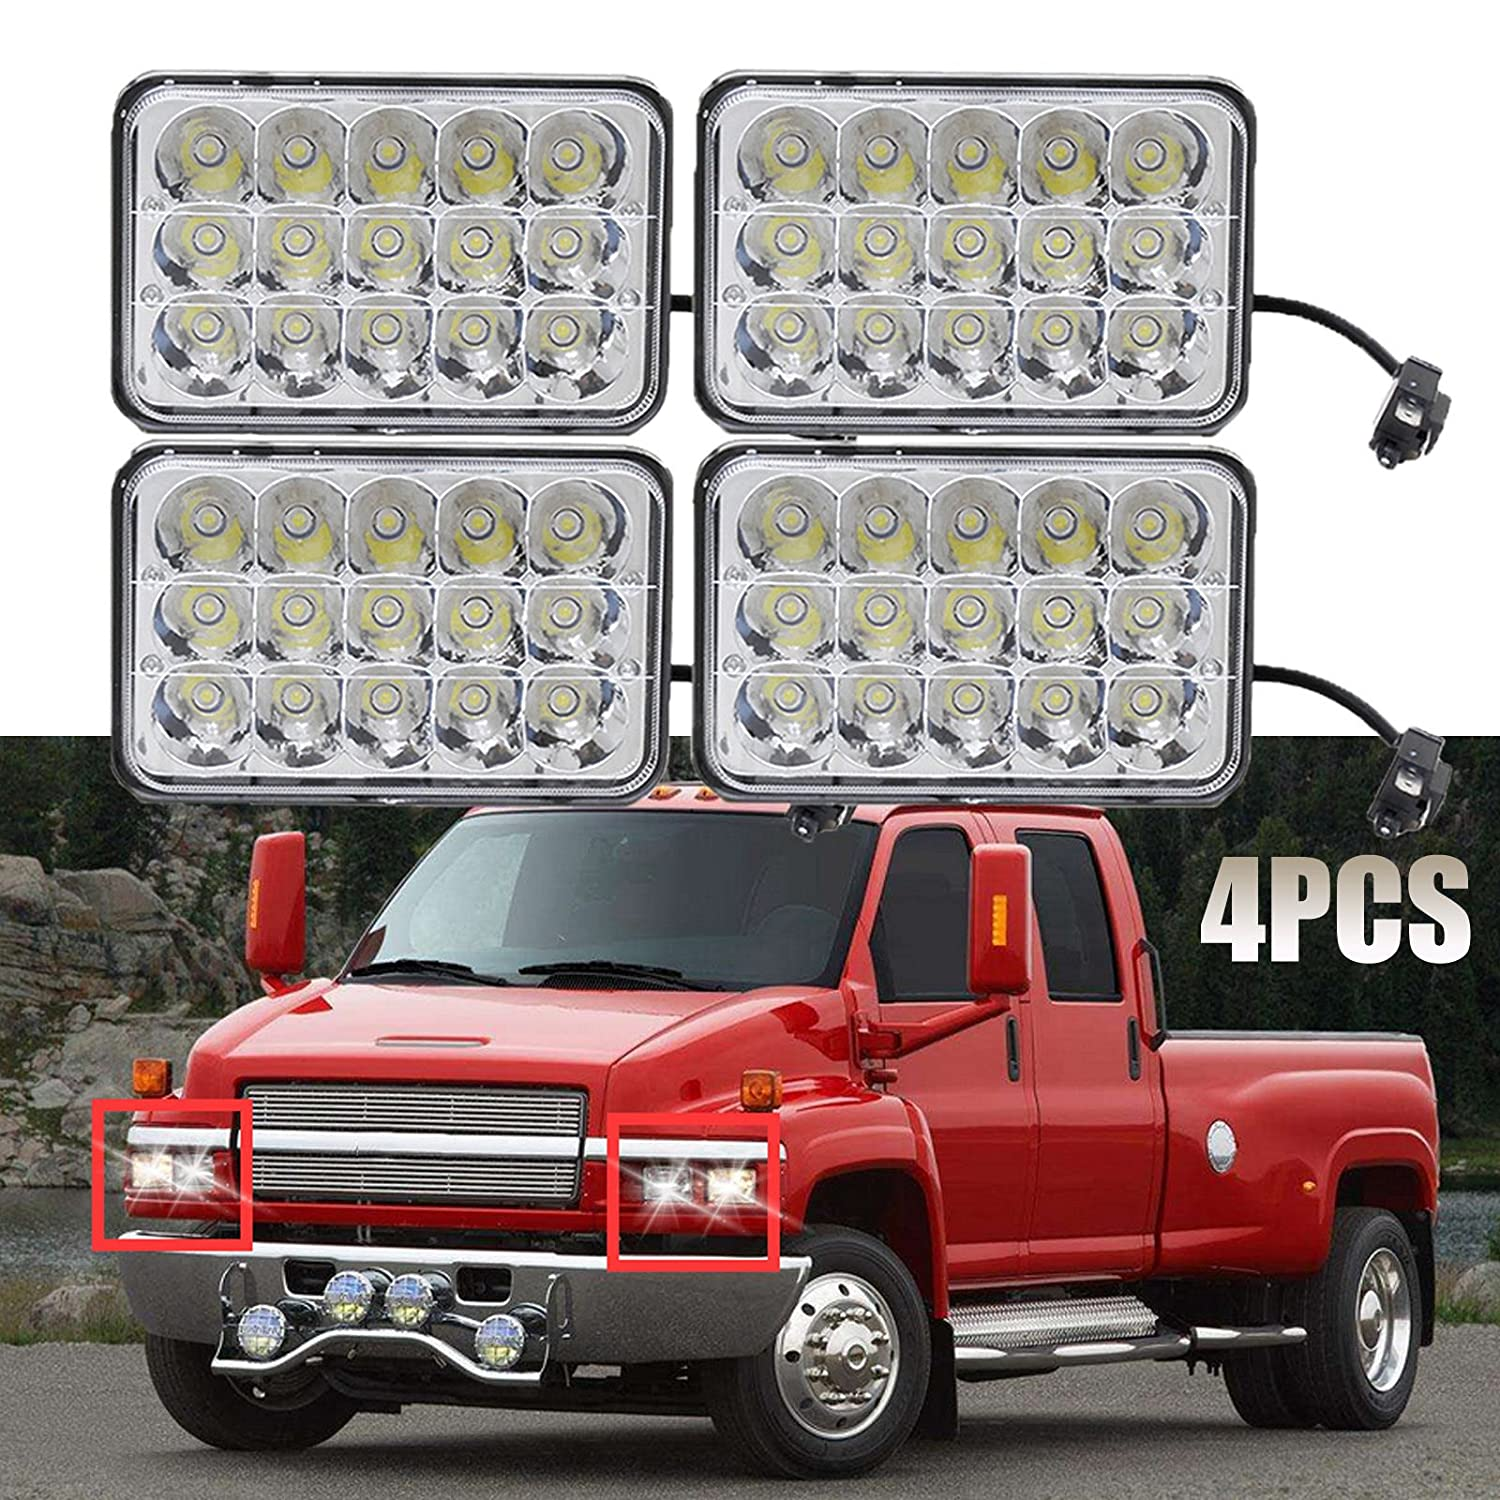 Led Headlights 4x6 Sealed Beam Housing Bulb For C5500 Brake Light Pigtail Wiring Diagram Chevrolet Kodiak C4500 And 2003 2009 Models H4656 H4 Conversion High Low Dual